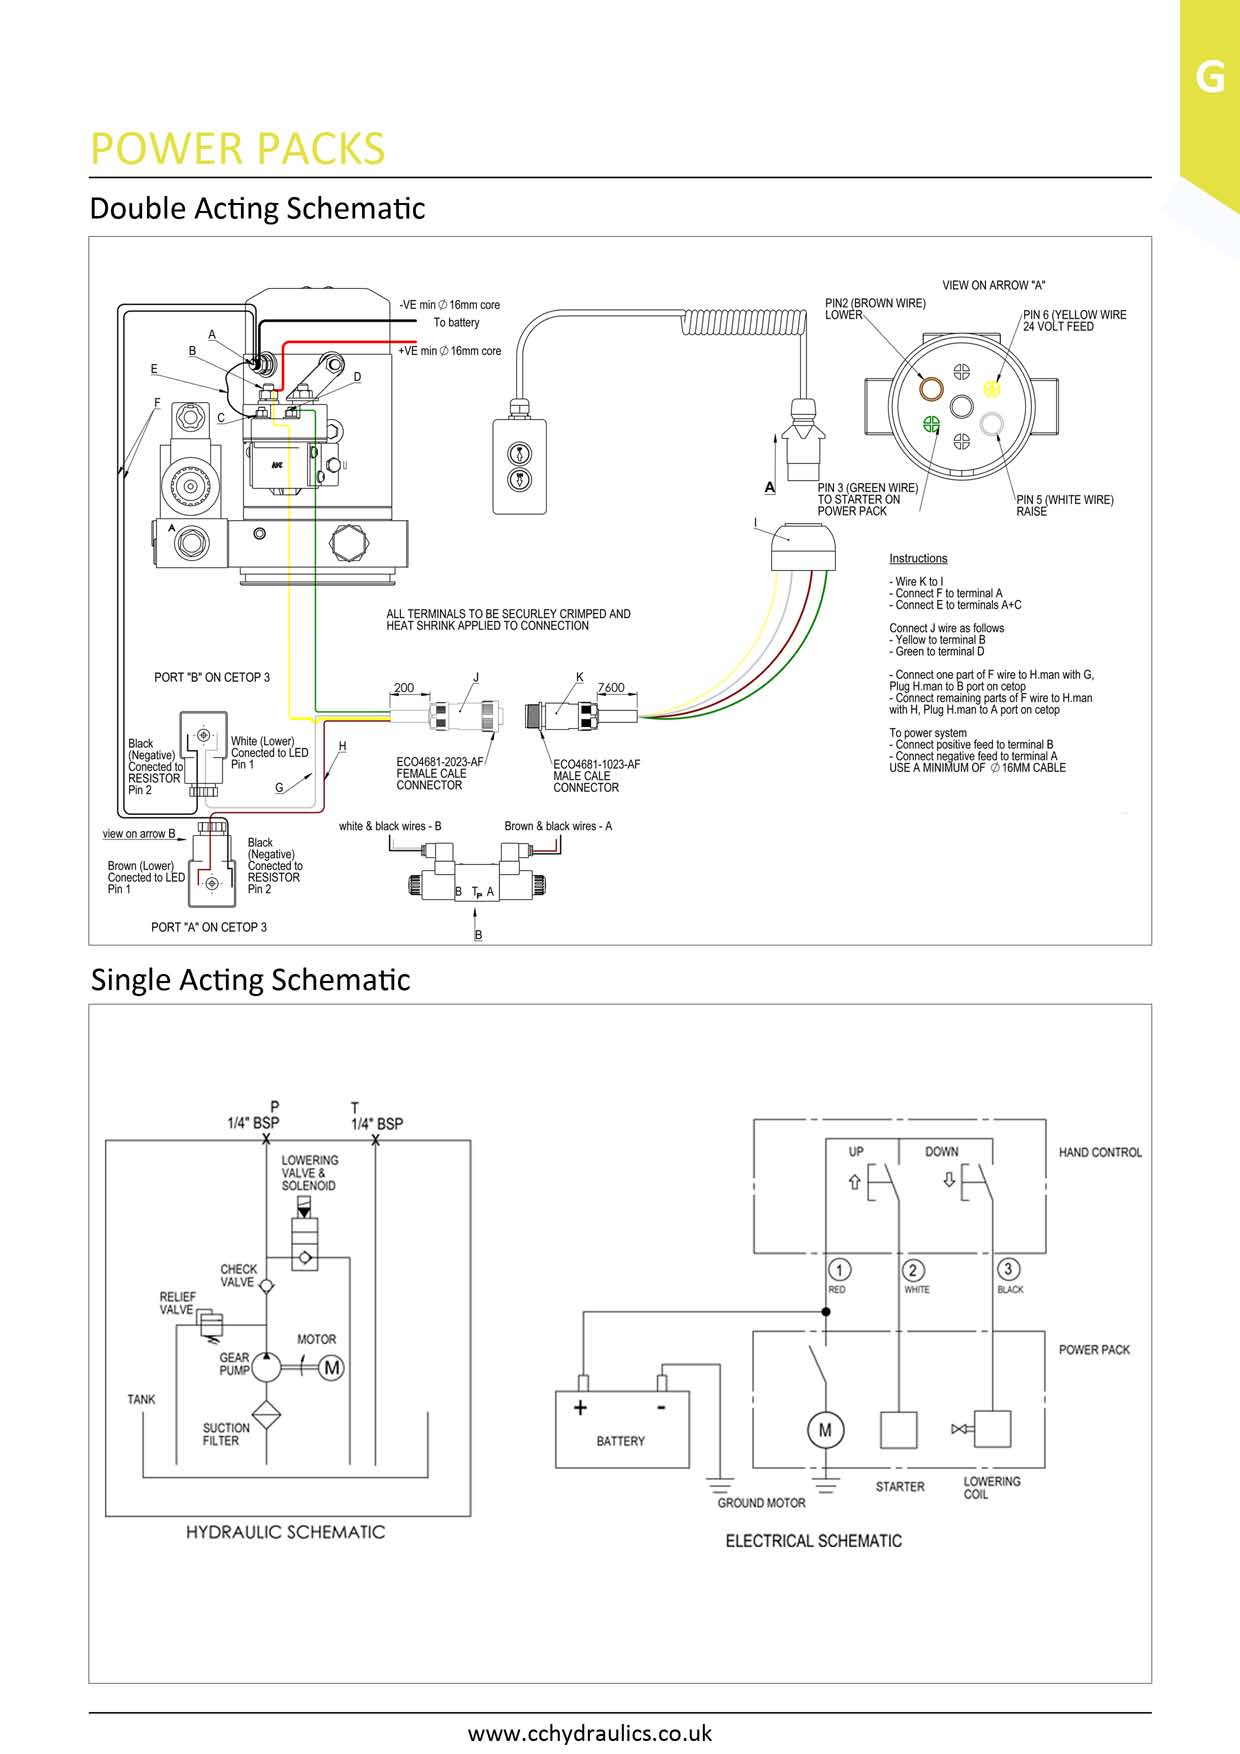 da & sa wiring diagrams c&c hydraulics ltd thermolec wiring-diagram da & sa wiring diagrams